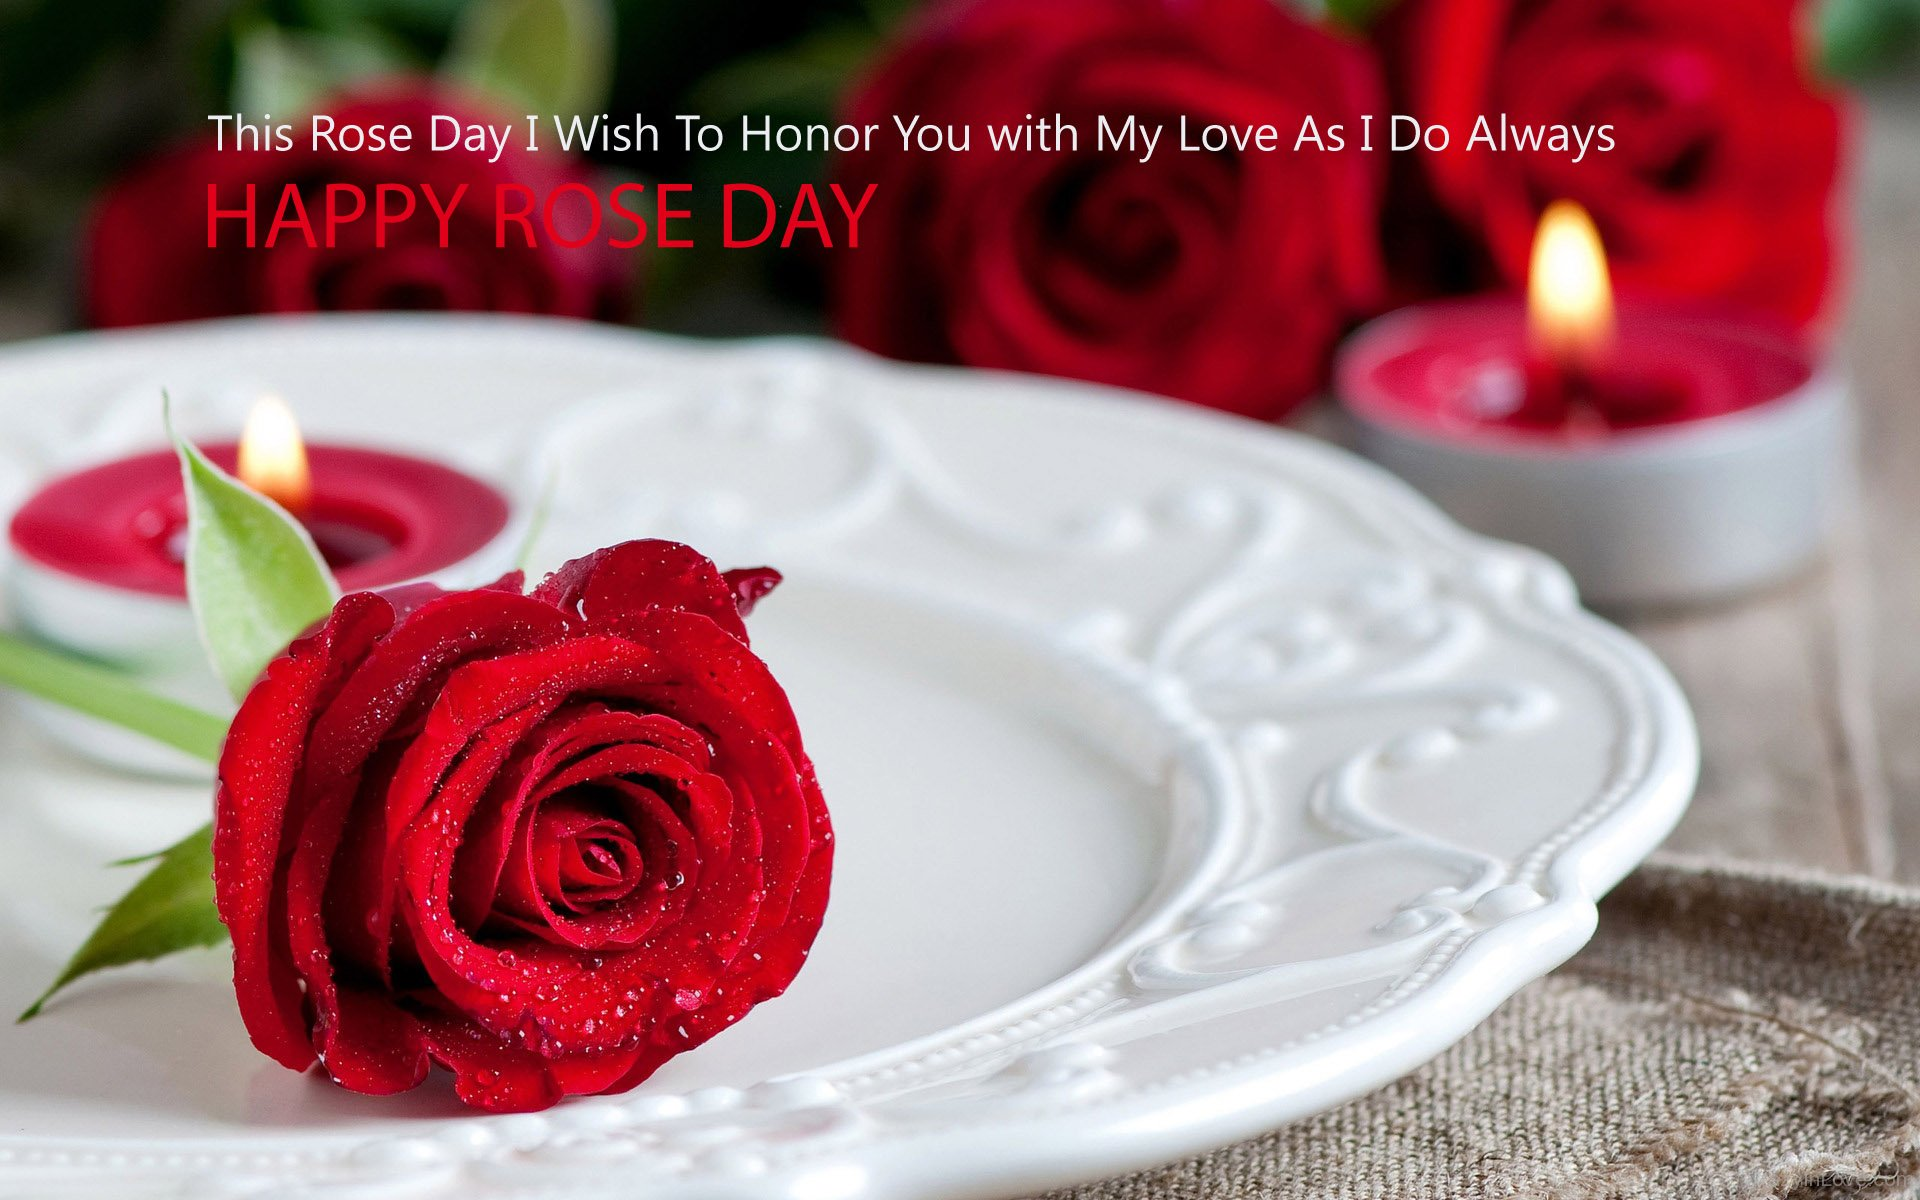 This Rose Day I Wish To Honor You With My Love As I Do Always